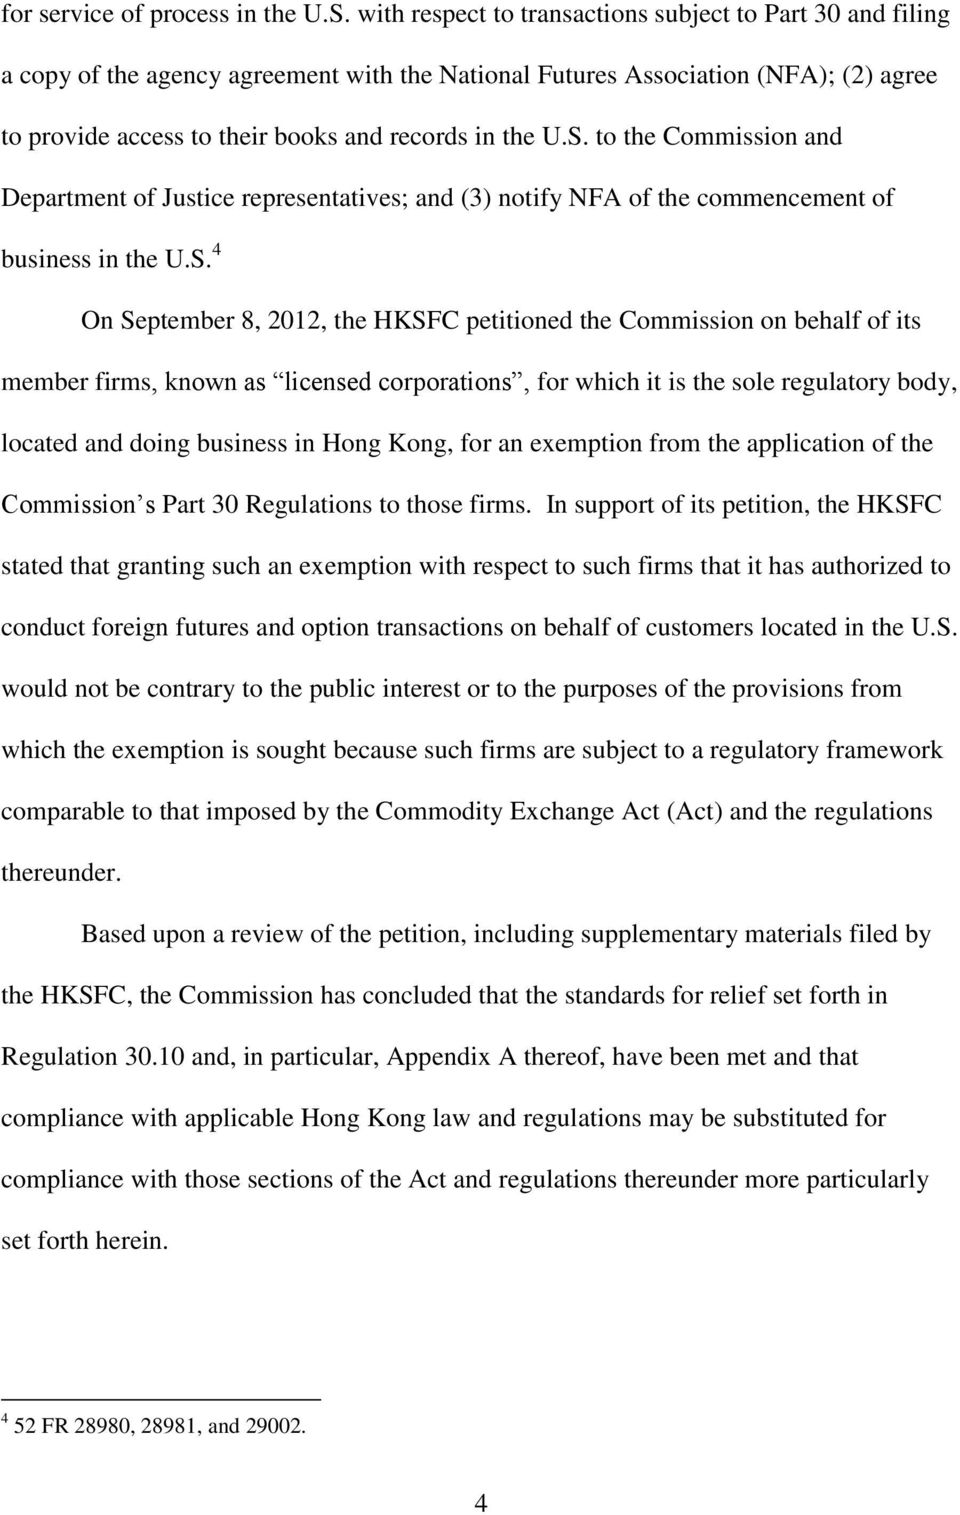 S. to the Commission and Department of Justice representatives; and (3) notify NFA of the commencement of business in the U.S. 4 On September 8, 2012, the HKSFC petitioned the Commission on behalf of